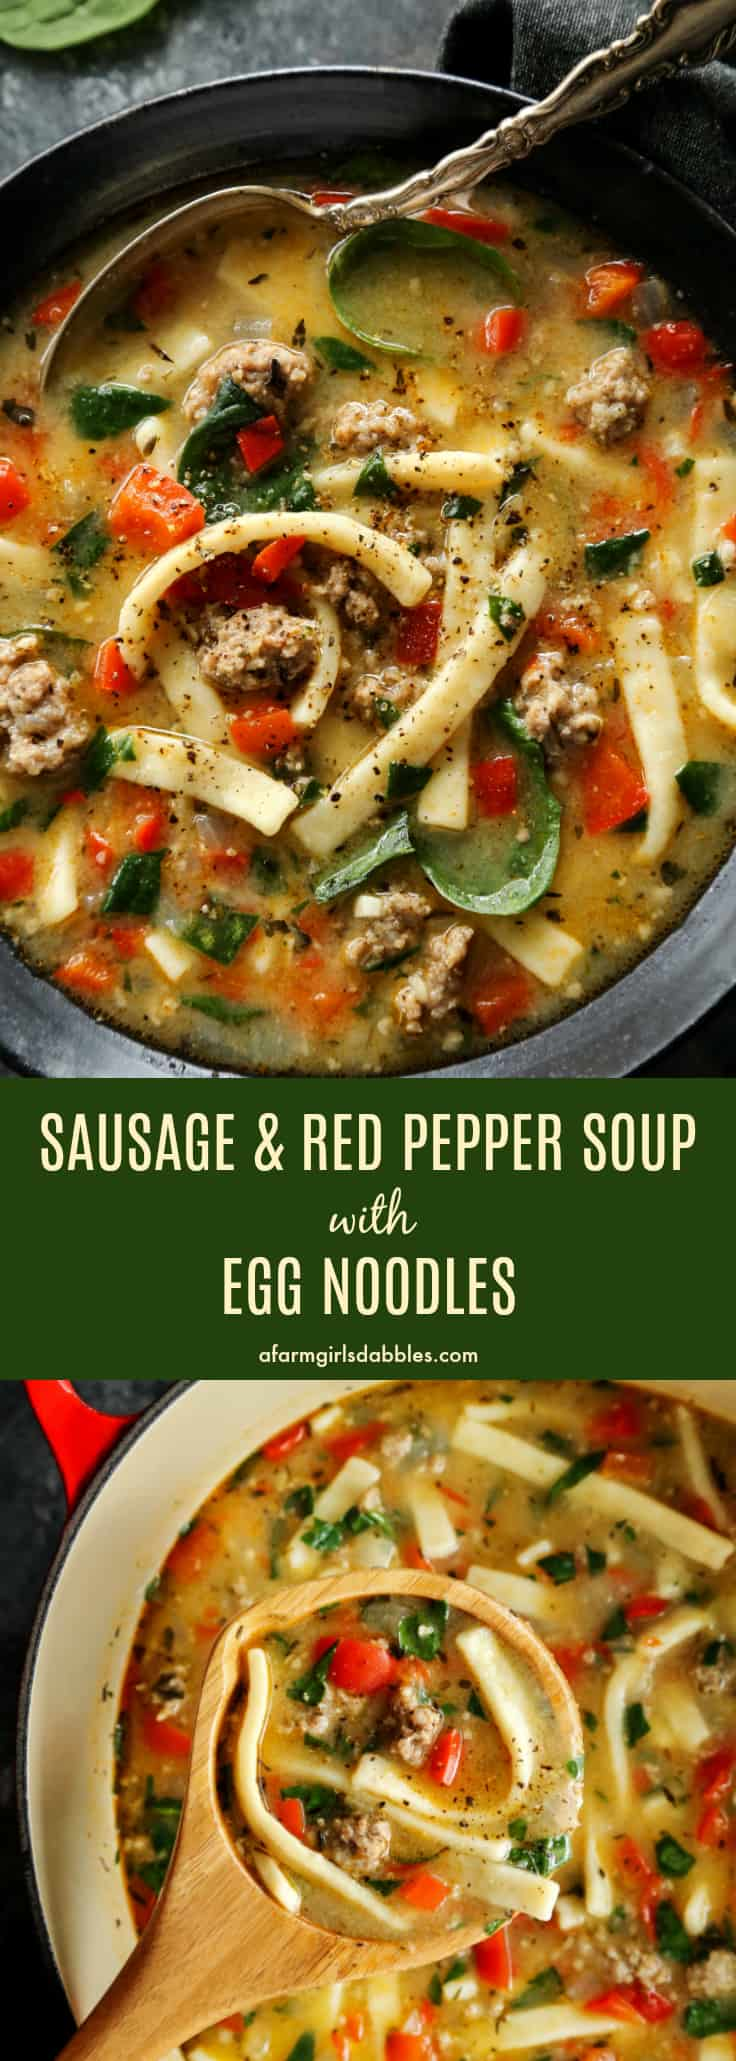 Sausage and Red Pepper Soup with Egg Noodles from afarmgirlsdabbles.com #soup #sausage #redpepper #eggnoodles